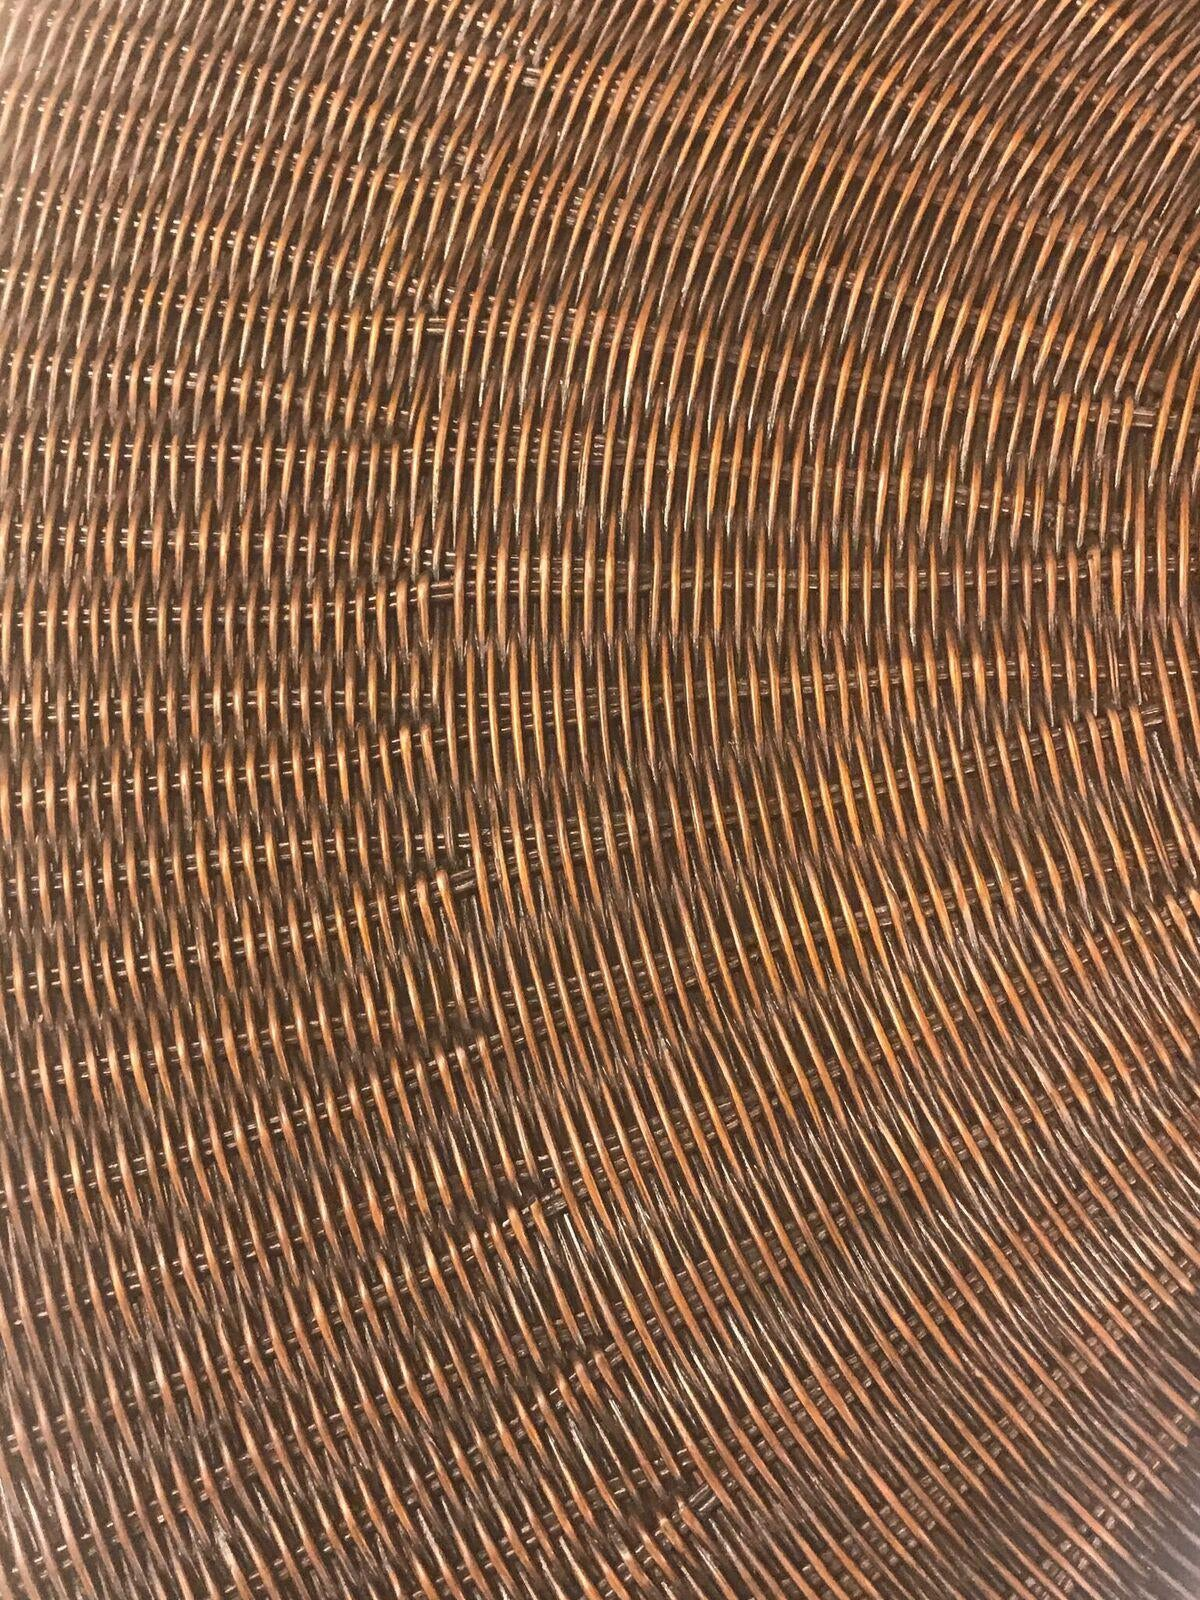 Modern Hickory Chair Wicker Round Coffee Table For Sale   Image 3 Of 4